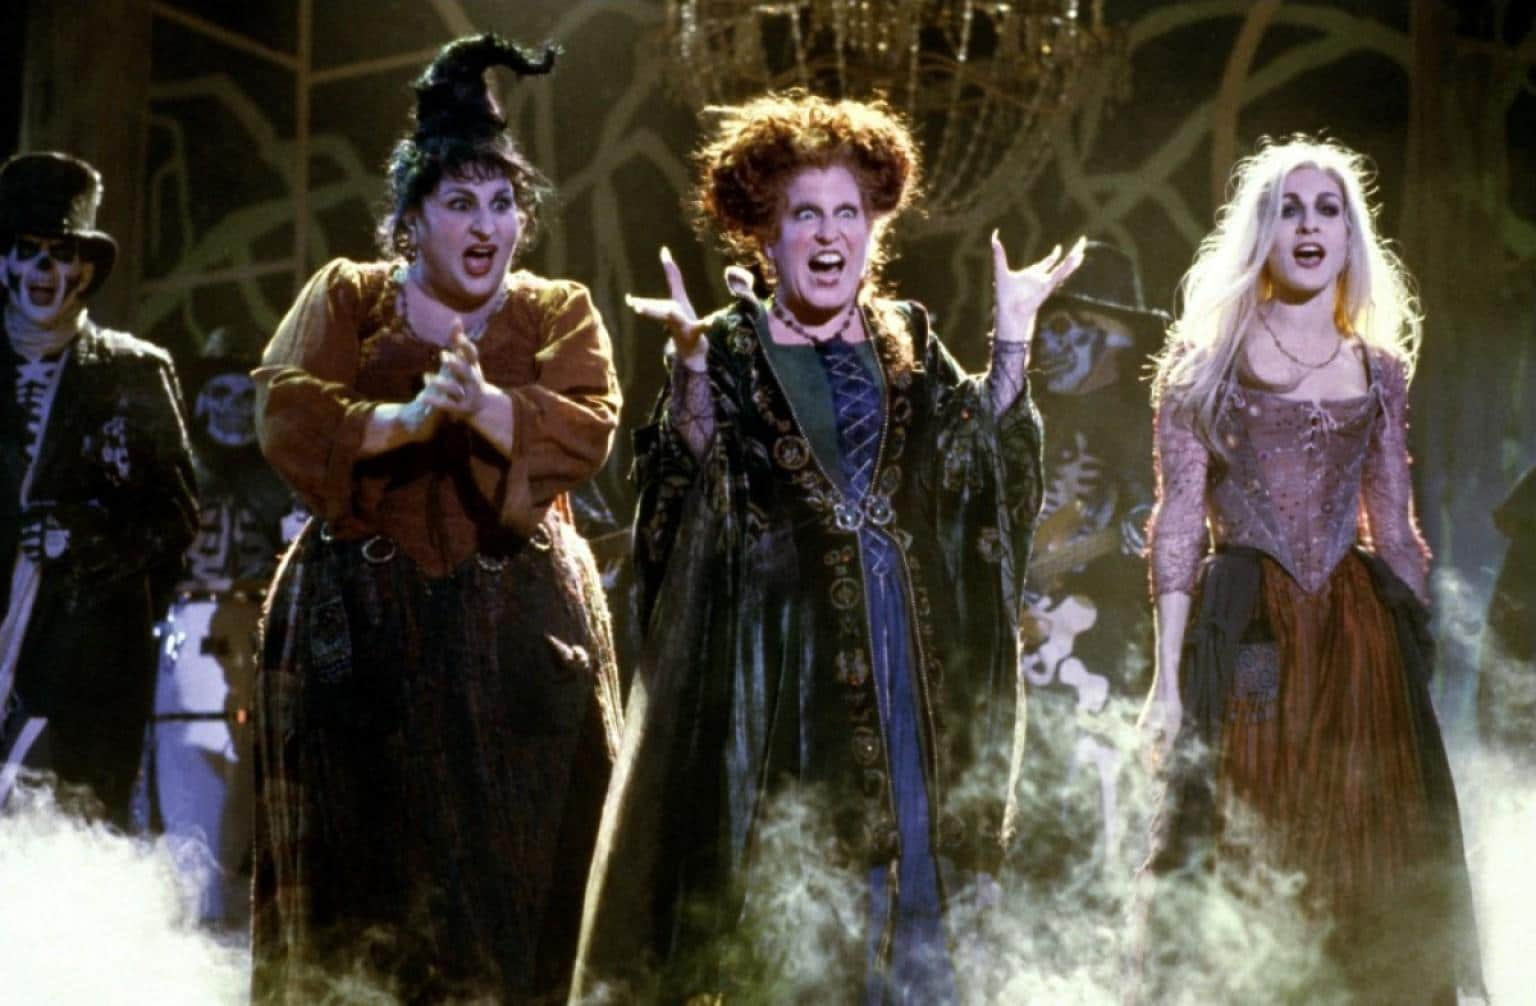 Bette Midler, Sarah Jessica Parker and Kathy Najimy in the film Hocus Pocus